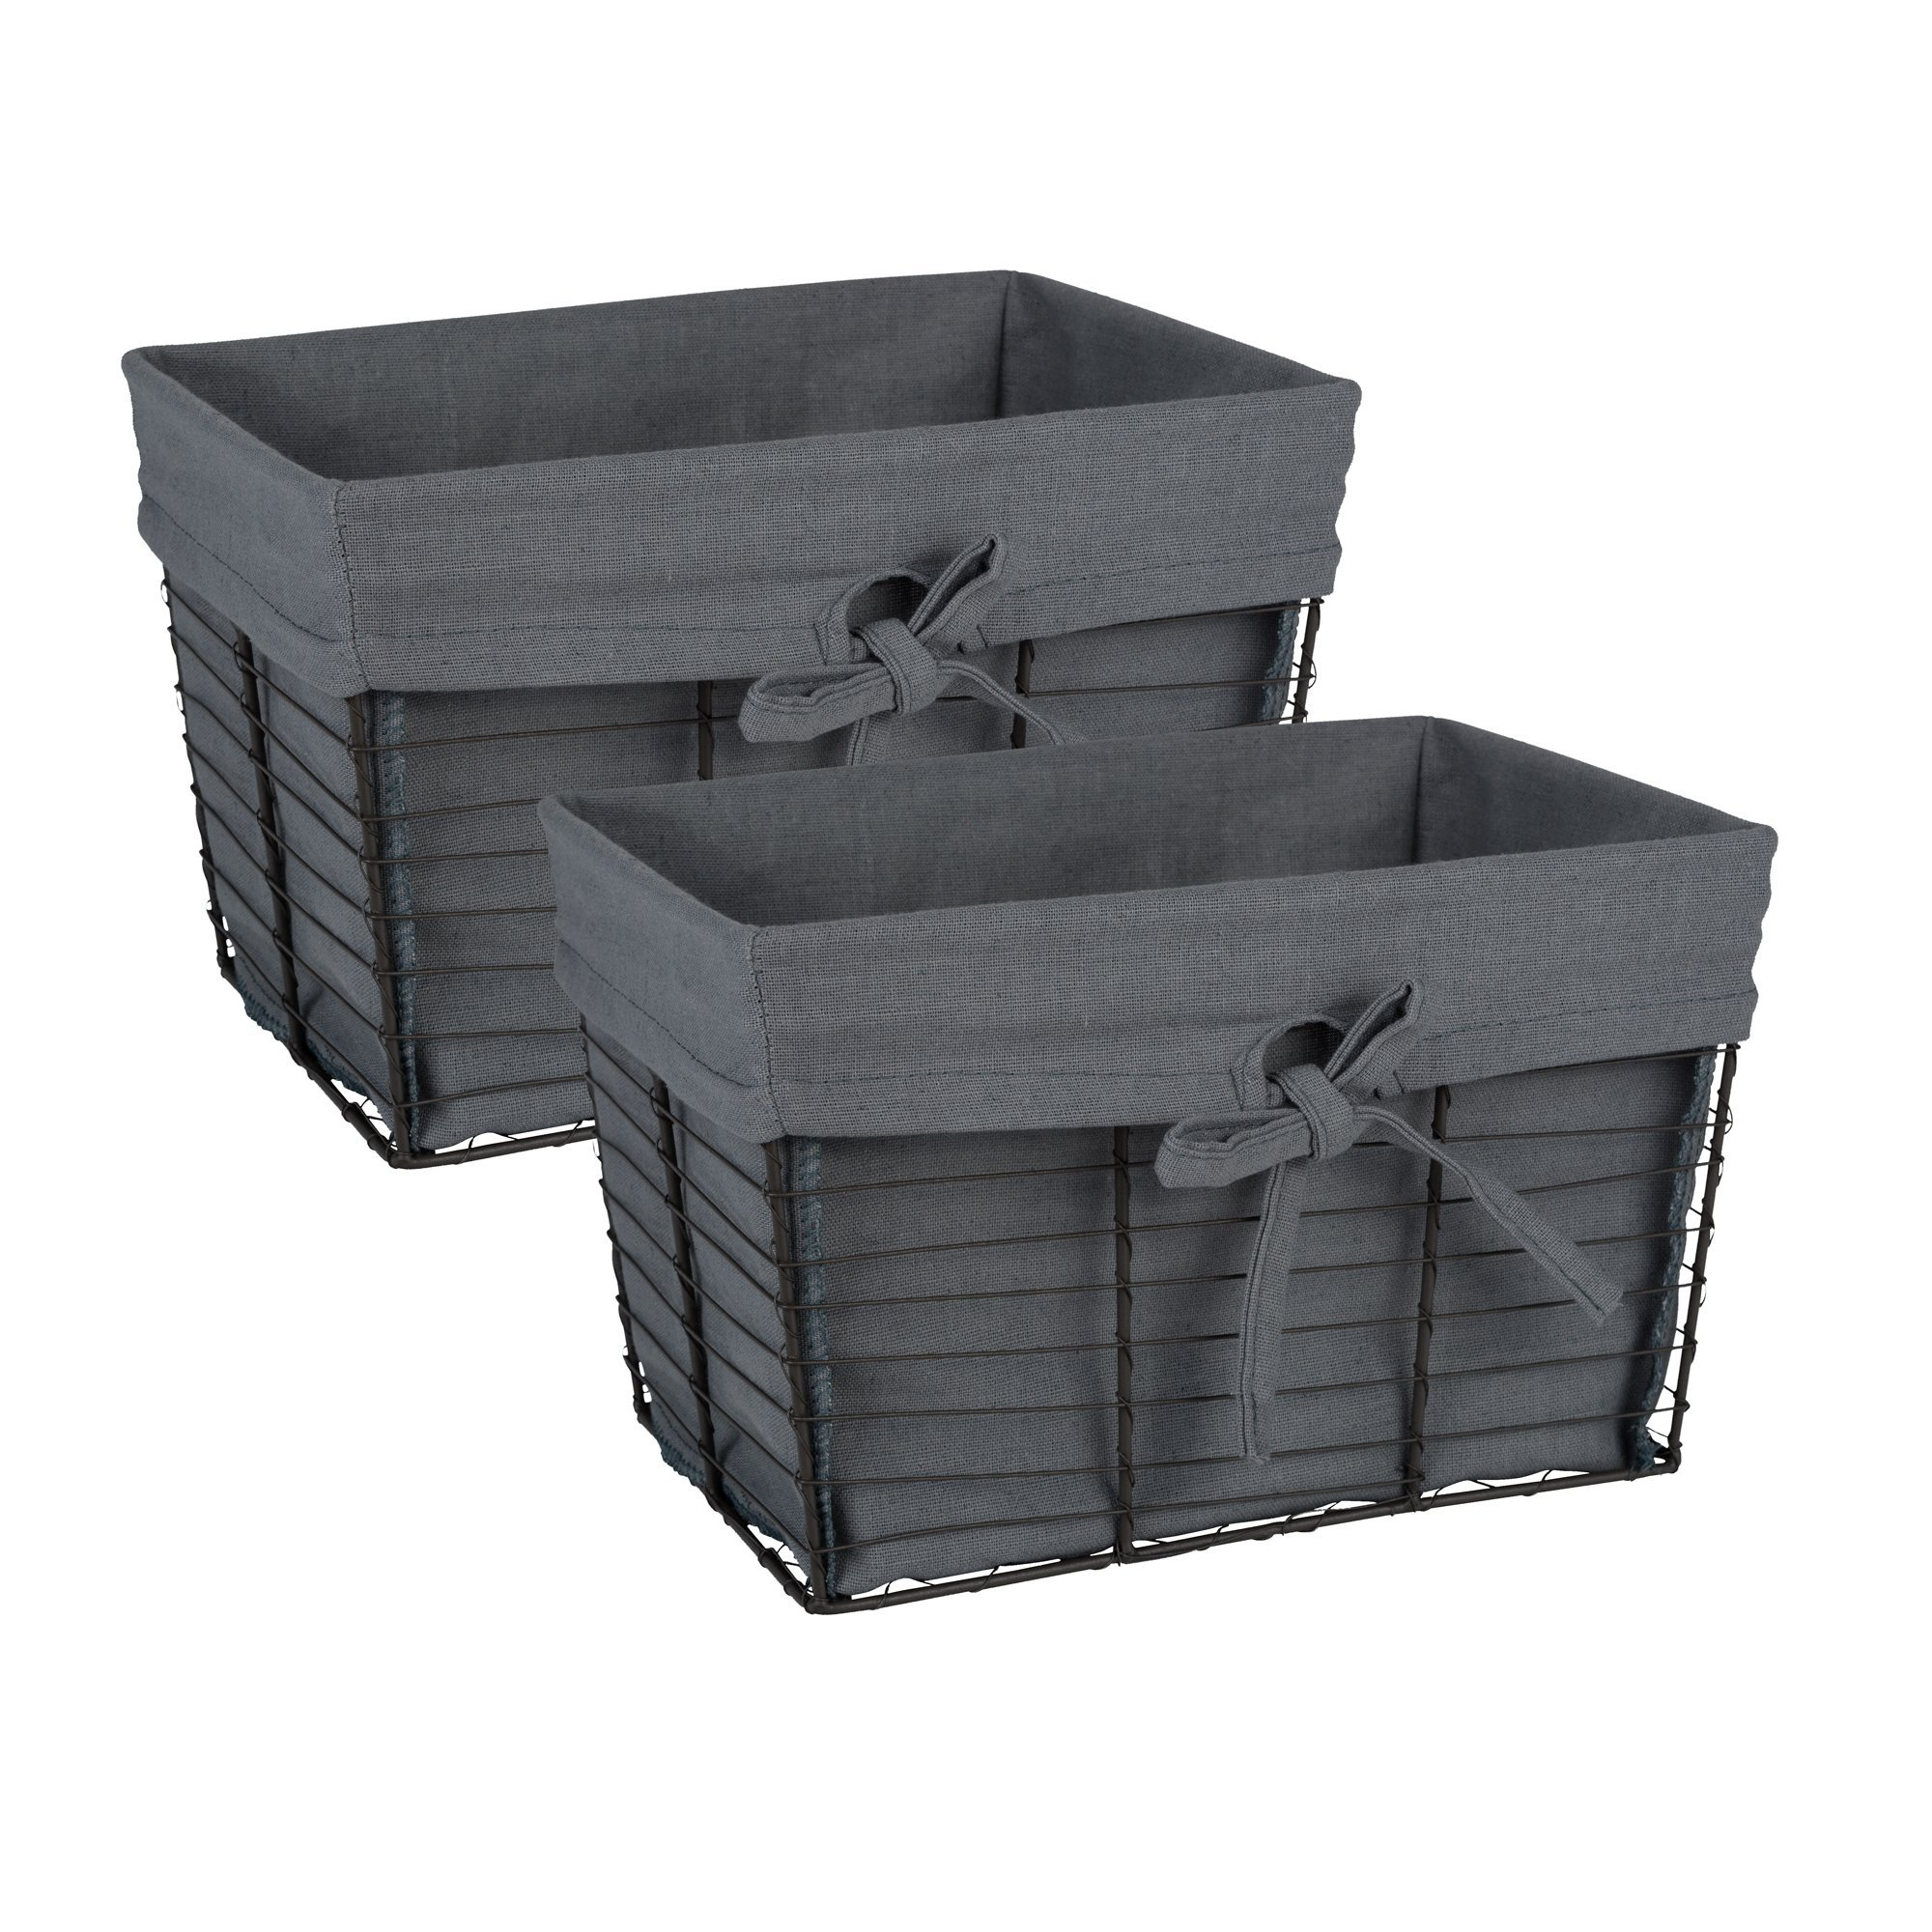 DII Farmhouse Vintage Food Safe Metal Chicken Wire Storage Baskets with Removable Fabric Liner for Home Décor or Kitchen Use, Set of 2, Gray